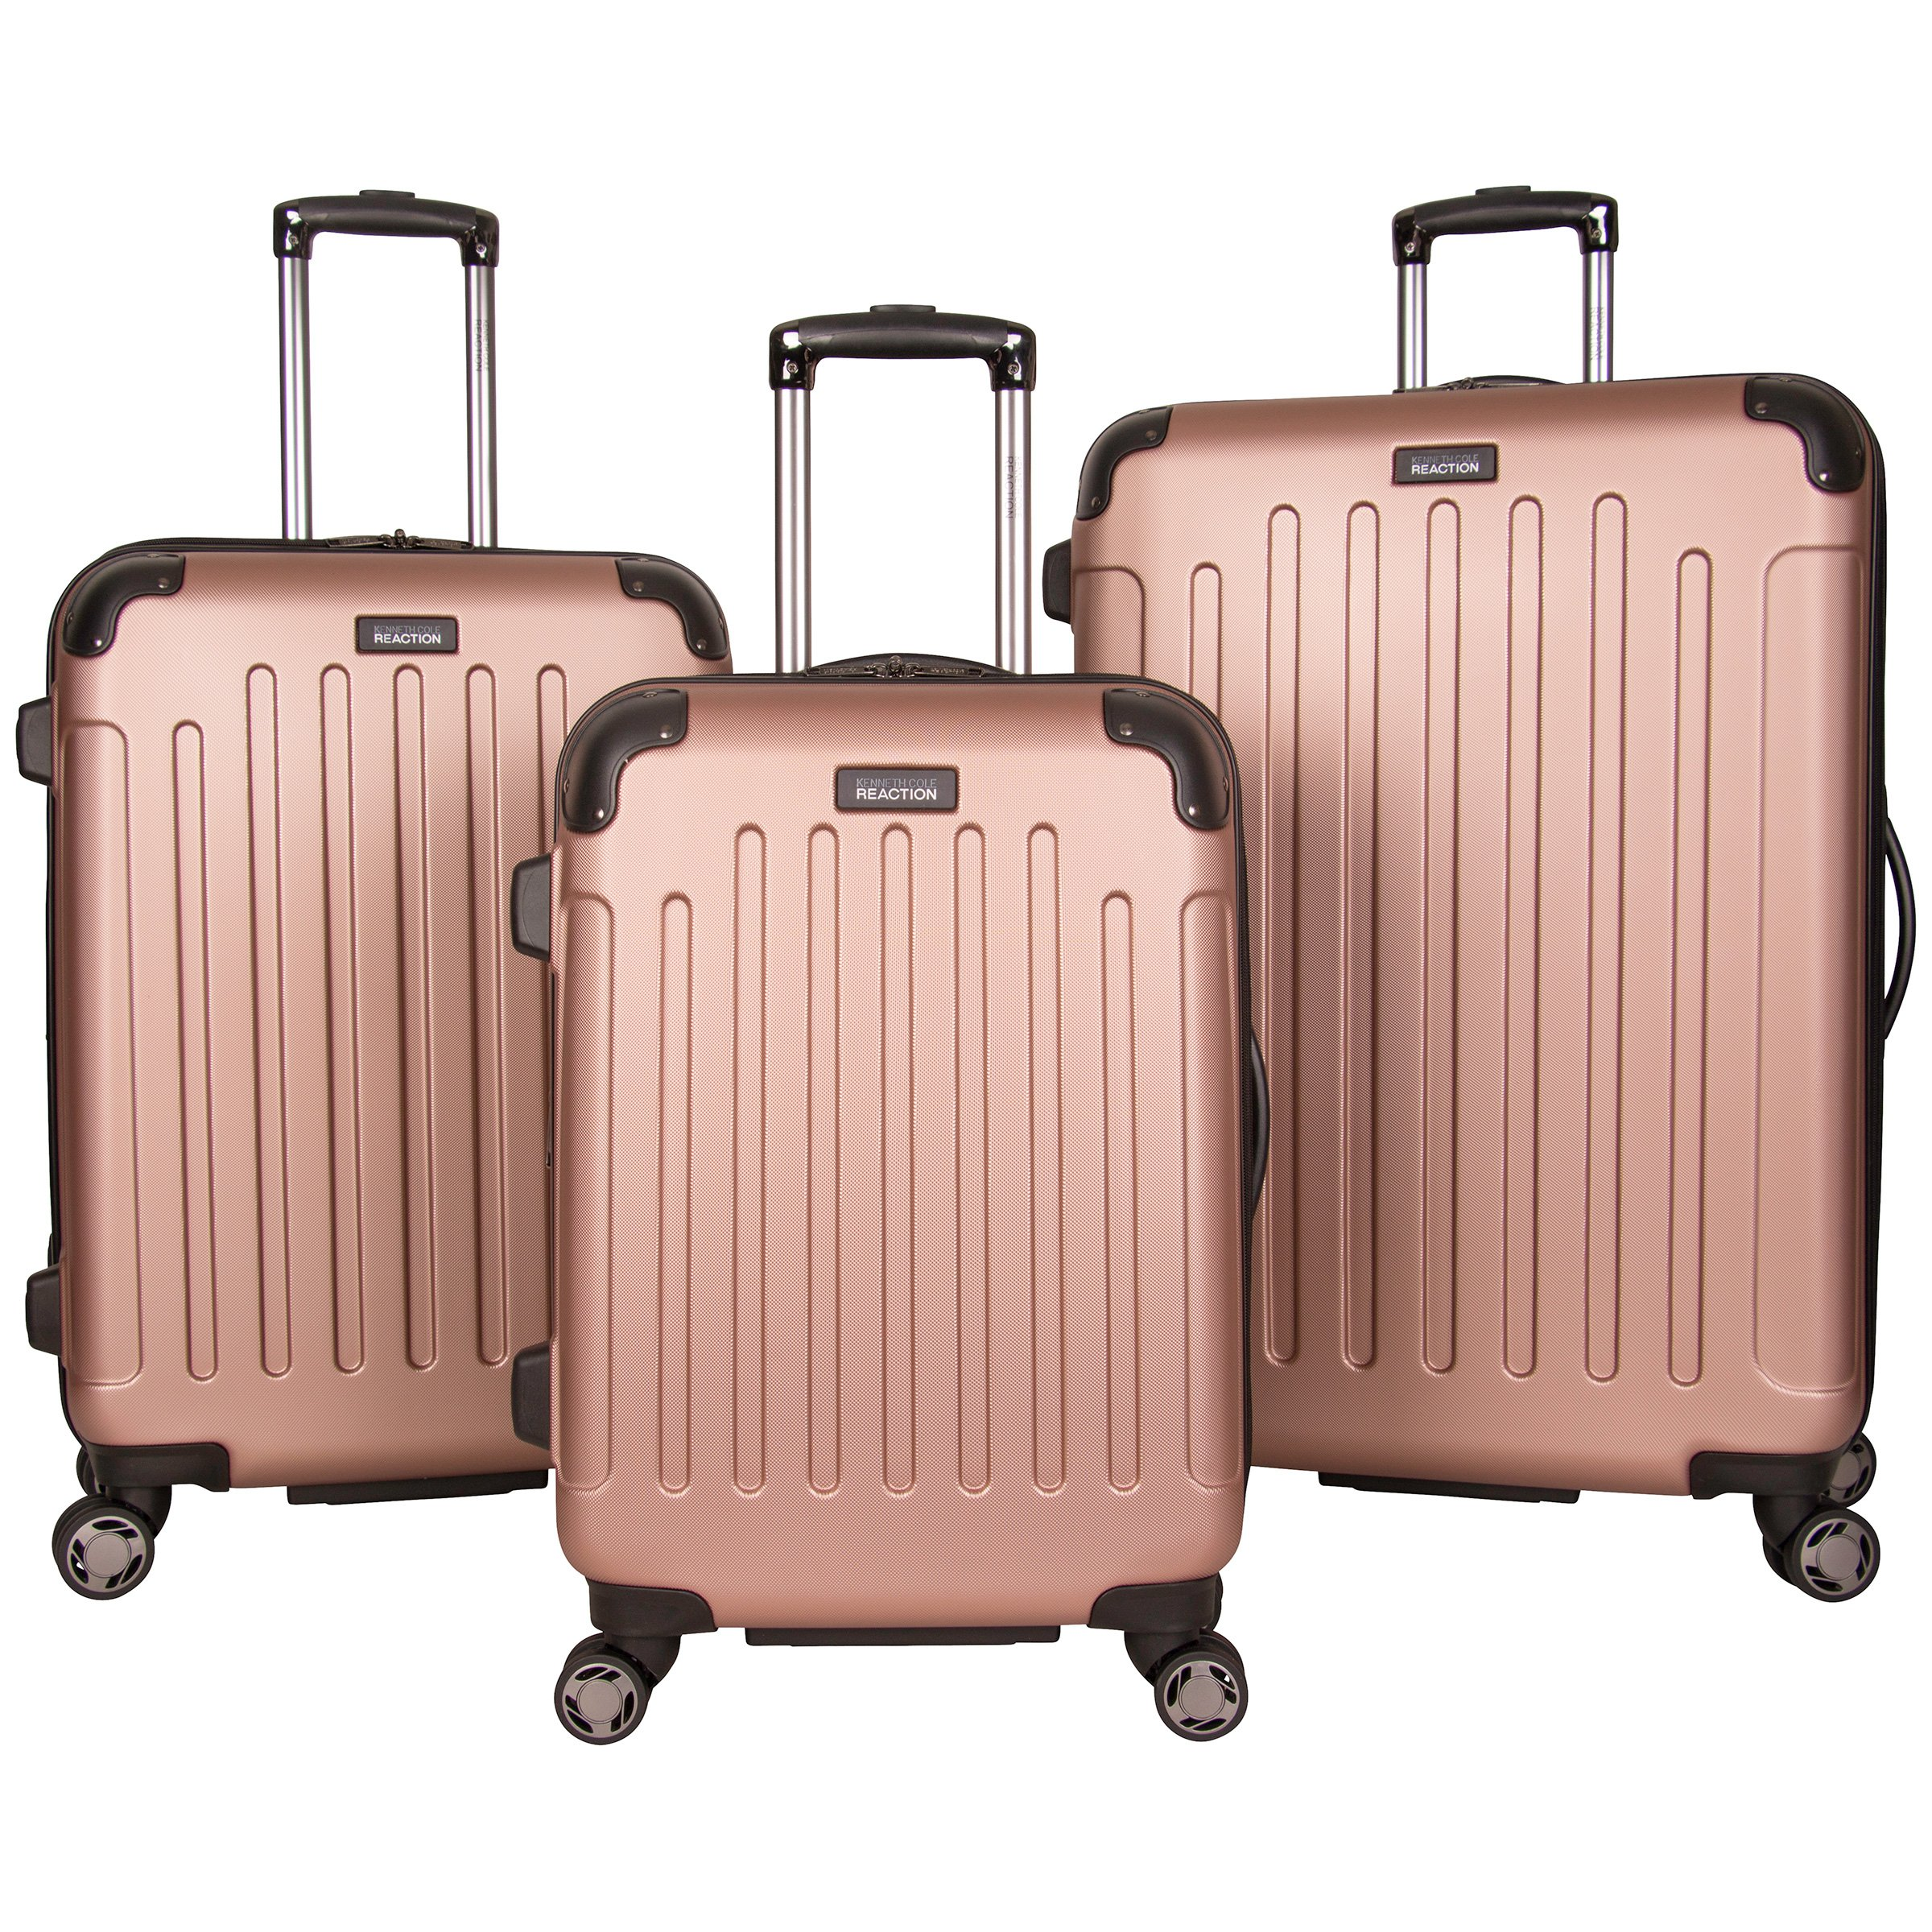 Kenneth Cole Reaction Renegade Lightweight Hardside Expandable 8-Wheel Spinner 3-Piece Luggage Set: 20'' Carry-On, 24'', 28'' Suitcases, Rose Gold by Kenneth Cole REACTION